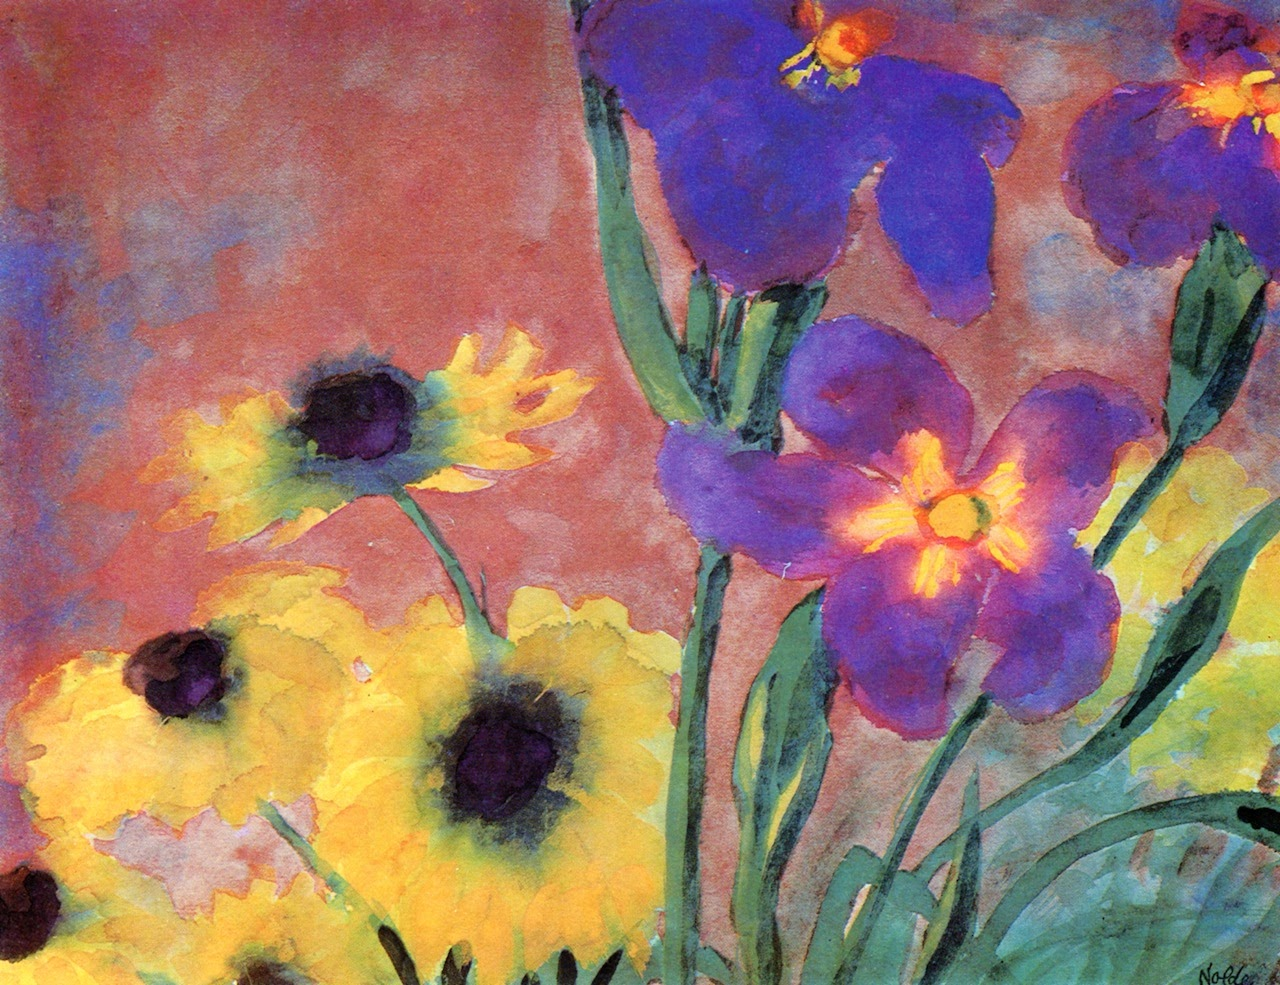 emil nolde Emil nolde facts: emil nolde (1867-1956) was one of the major german expressionist painters his religious scenes, landscapes, and still lifes are distinguished by an intense coloristic richness and primitivistic angularity.